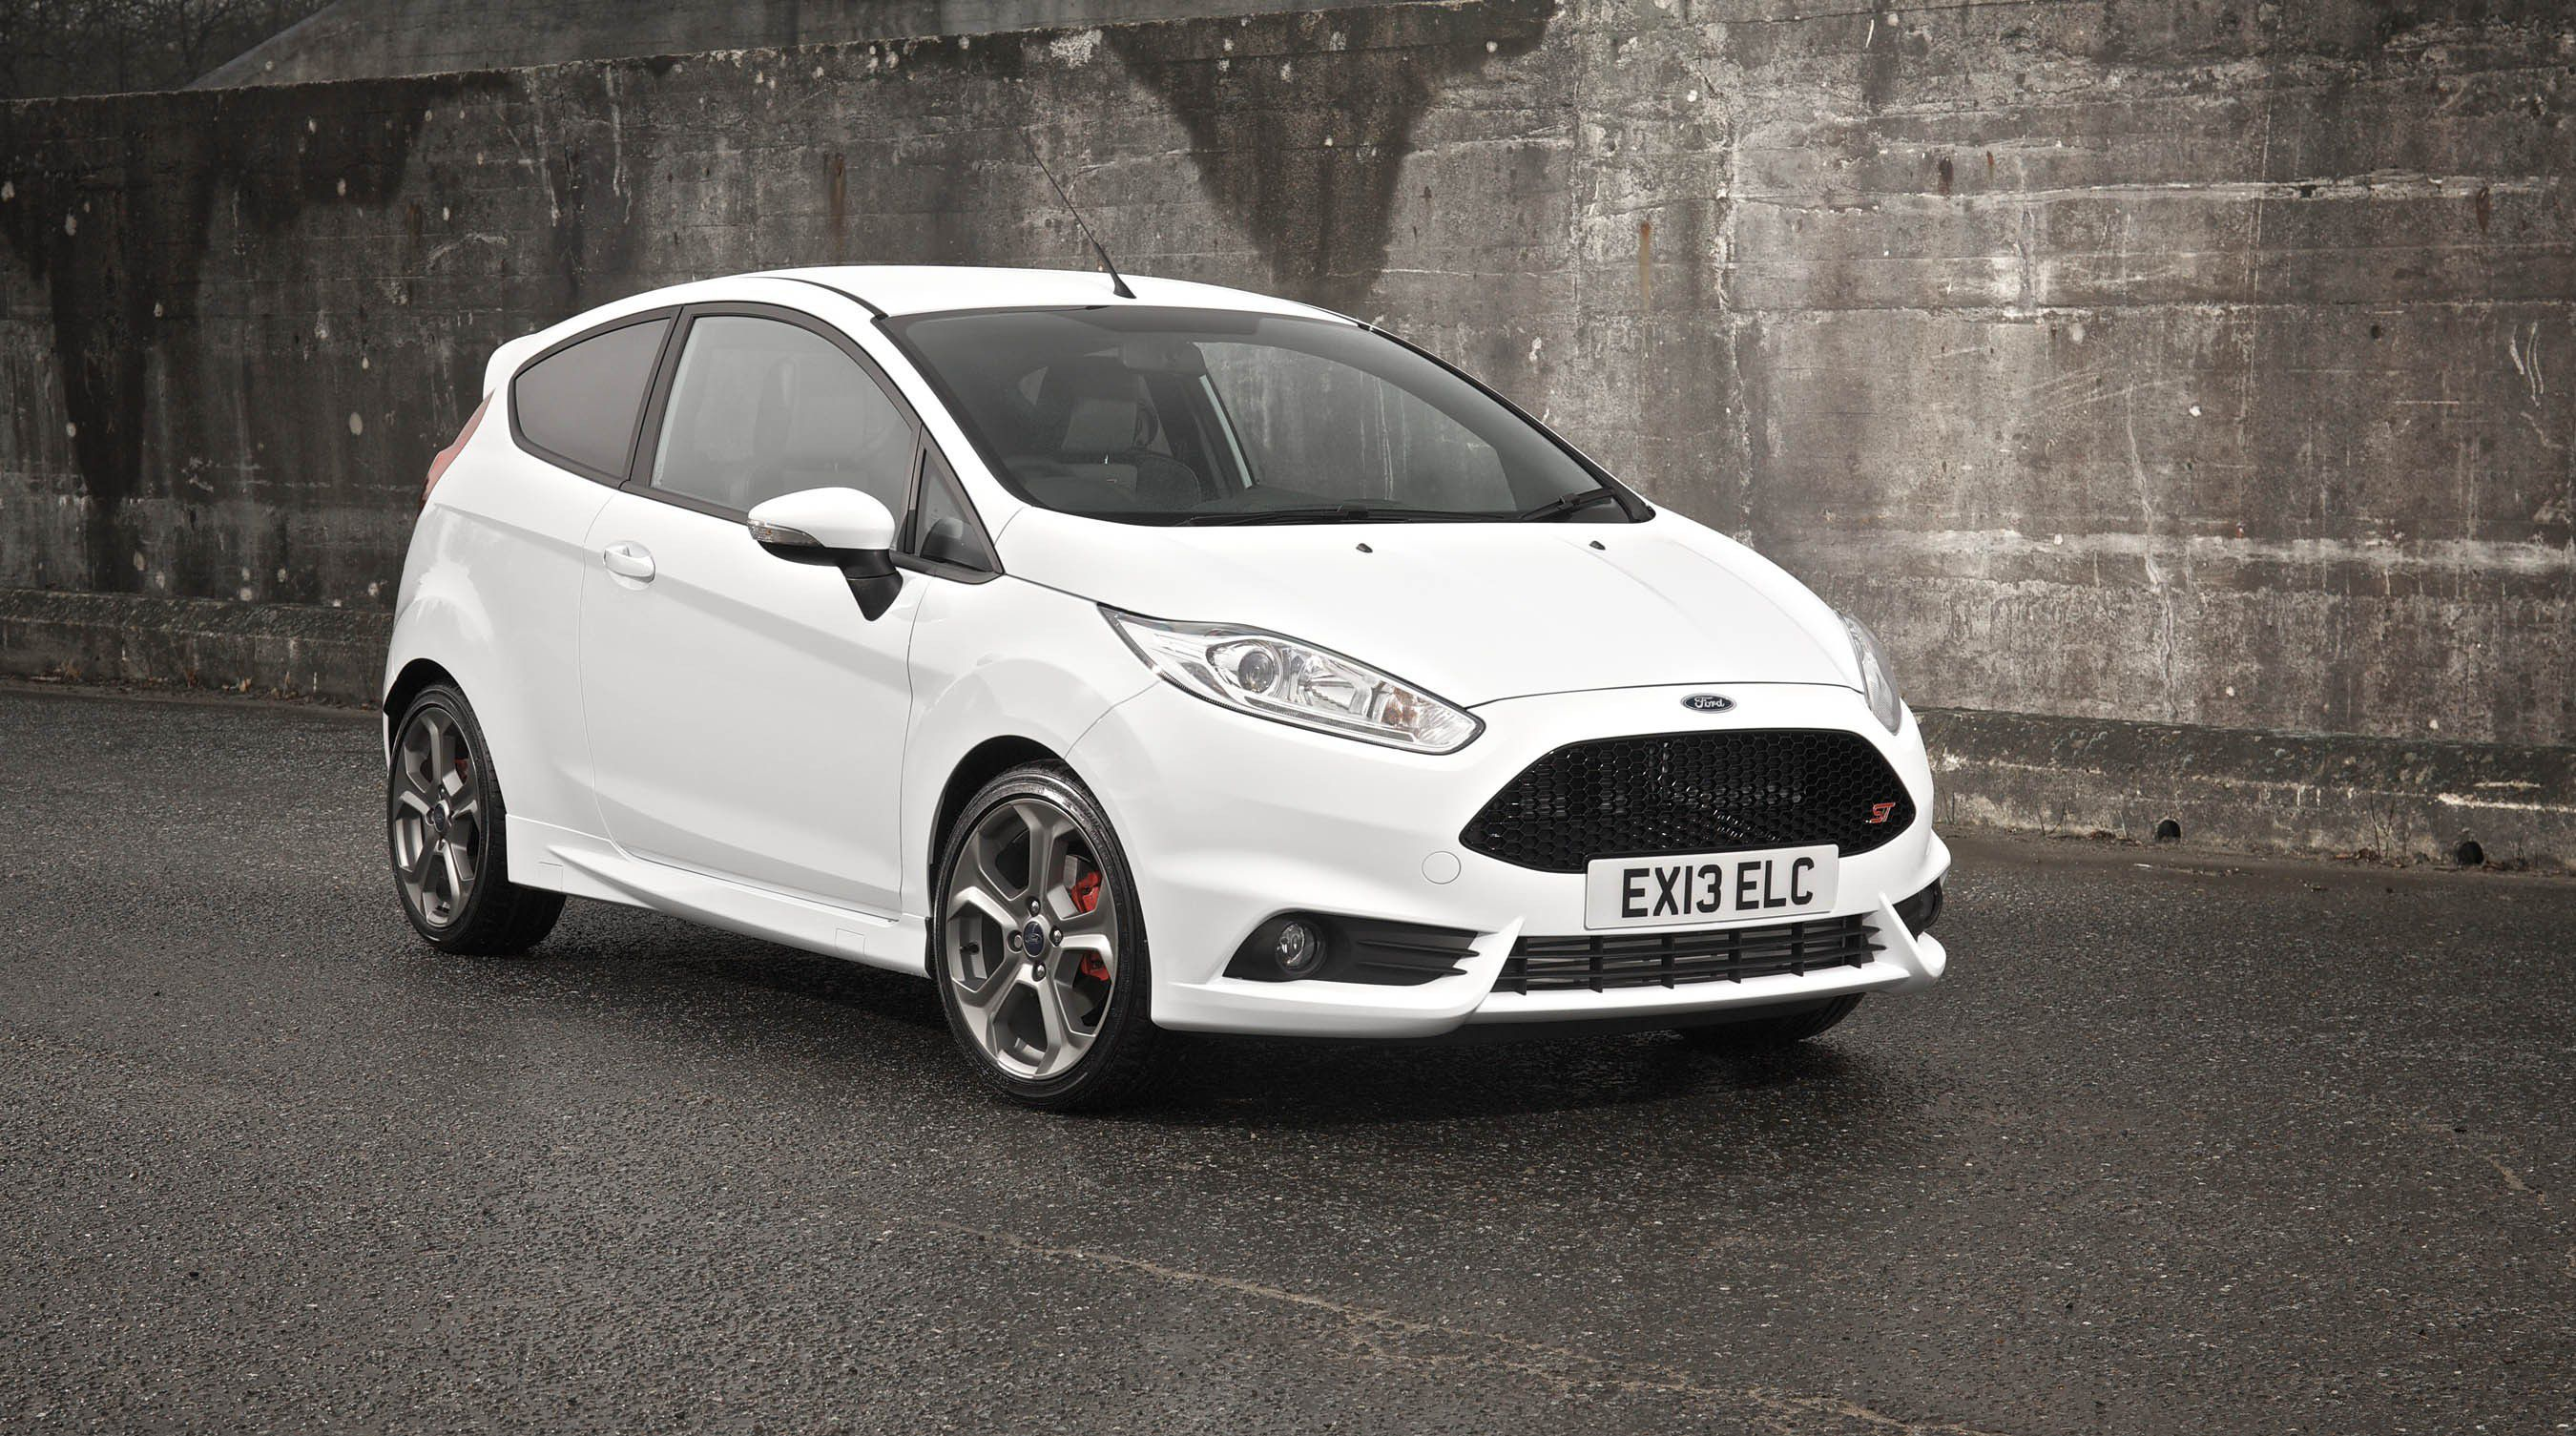 Ford Fiesta St Wallpapers Images Photos Pictures Backgrounds